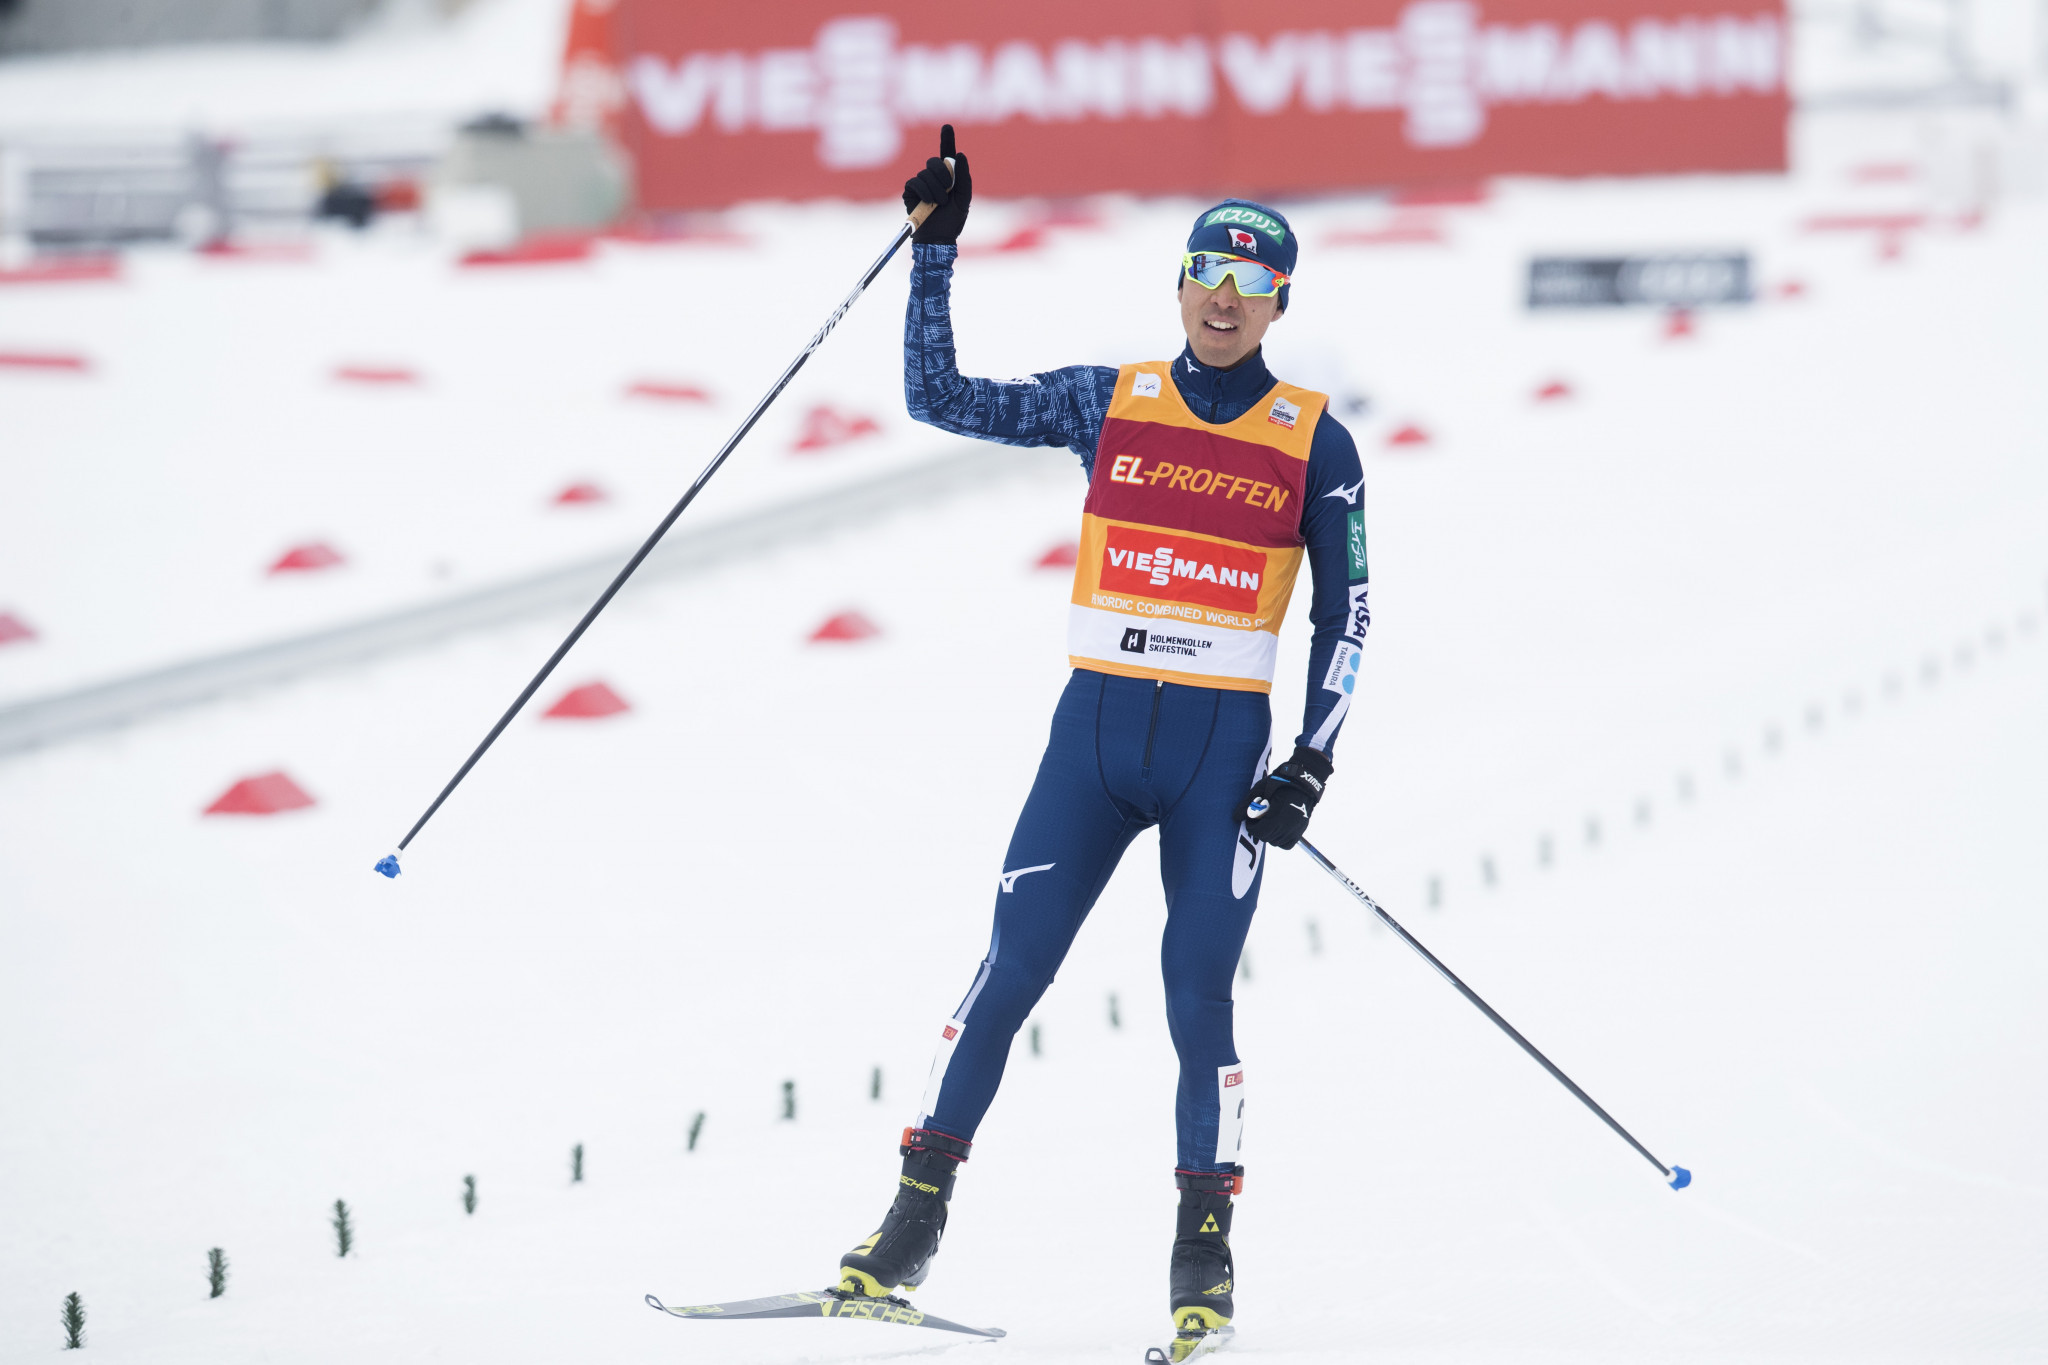 Japan's Akito Watabe goes into this weekend's FIS Nordic Combined World Cup finals knowing he has already earned the overall World Cup title ©Getty Images